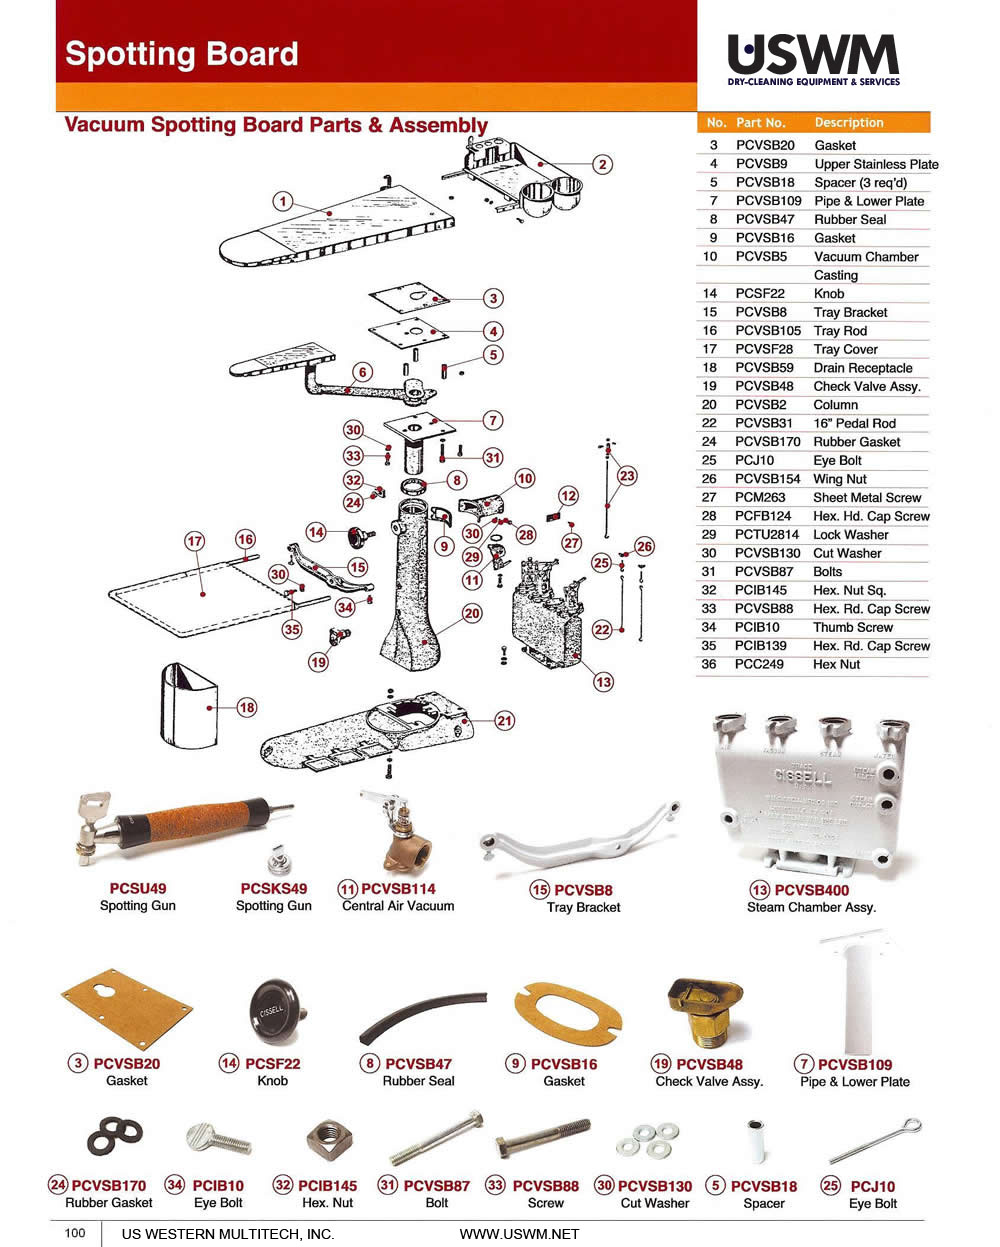 Cissell Uswm Dry Clean Laundry Machines Presses Parts And Wiring Diagrams Vacuum Spotting Board Assembly